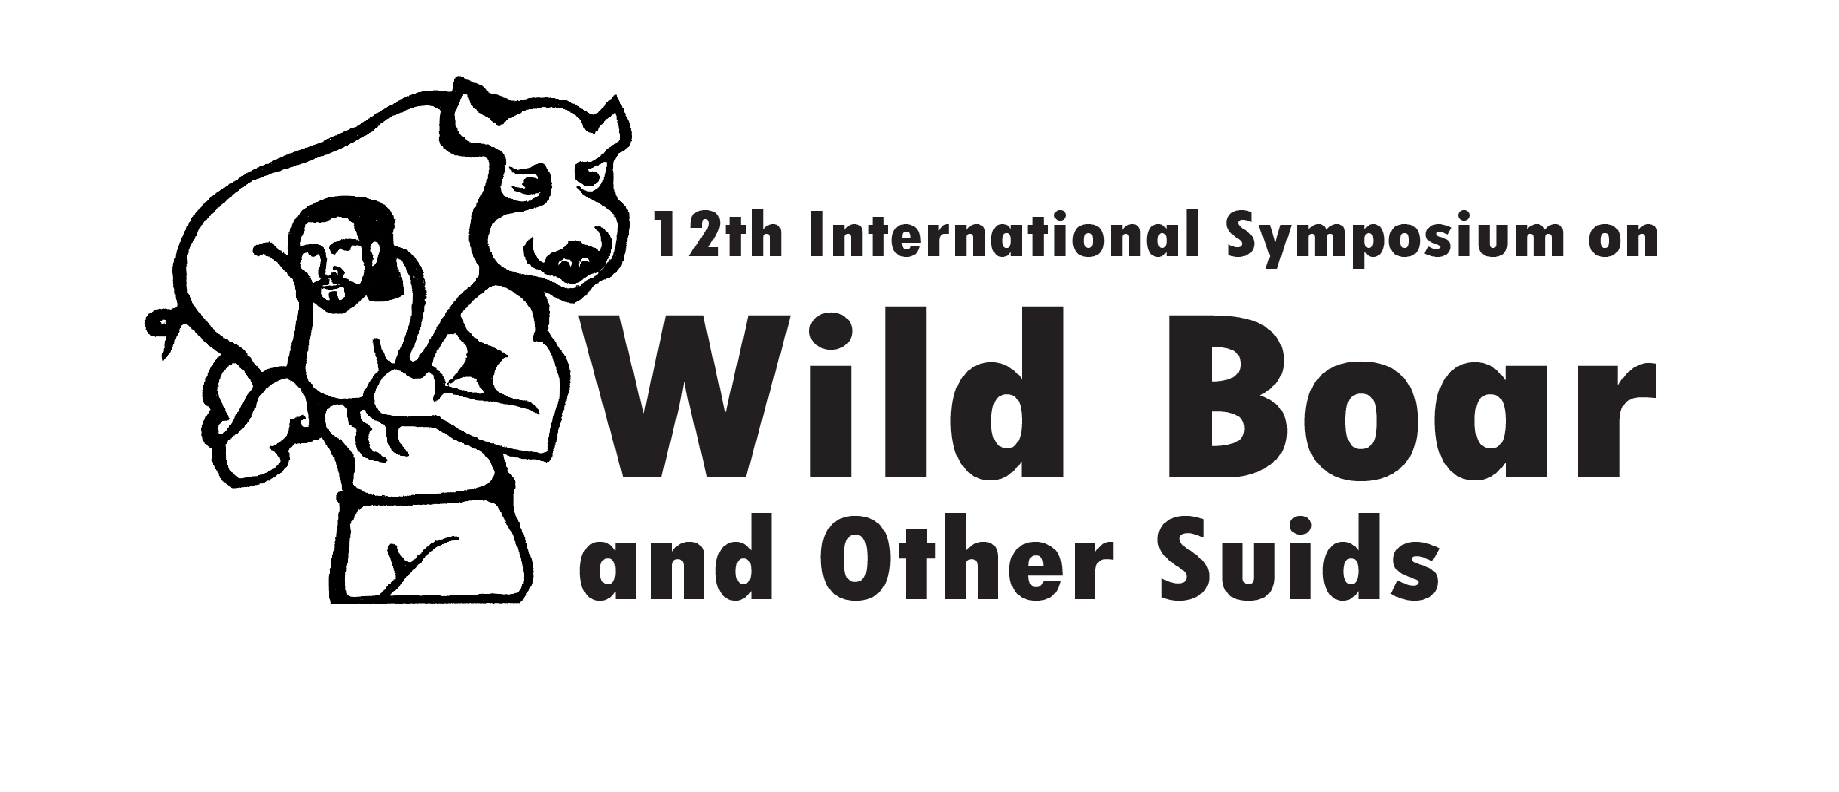 12th International Symposium on Wildboar and other Suids